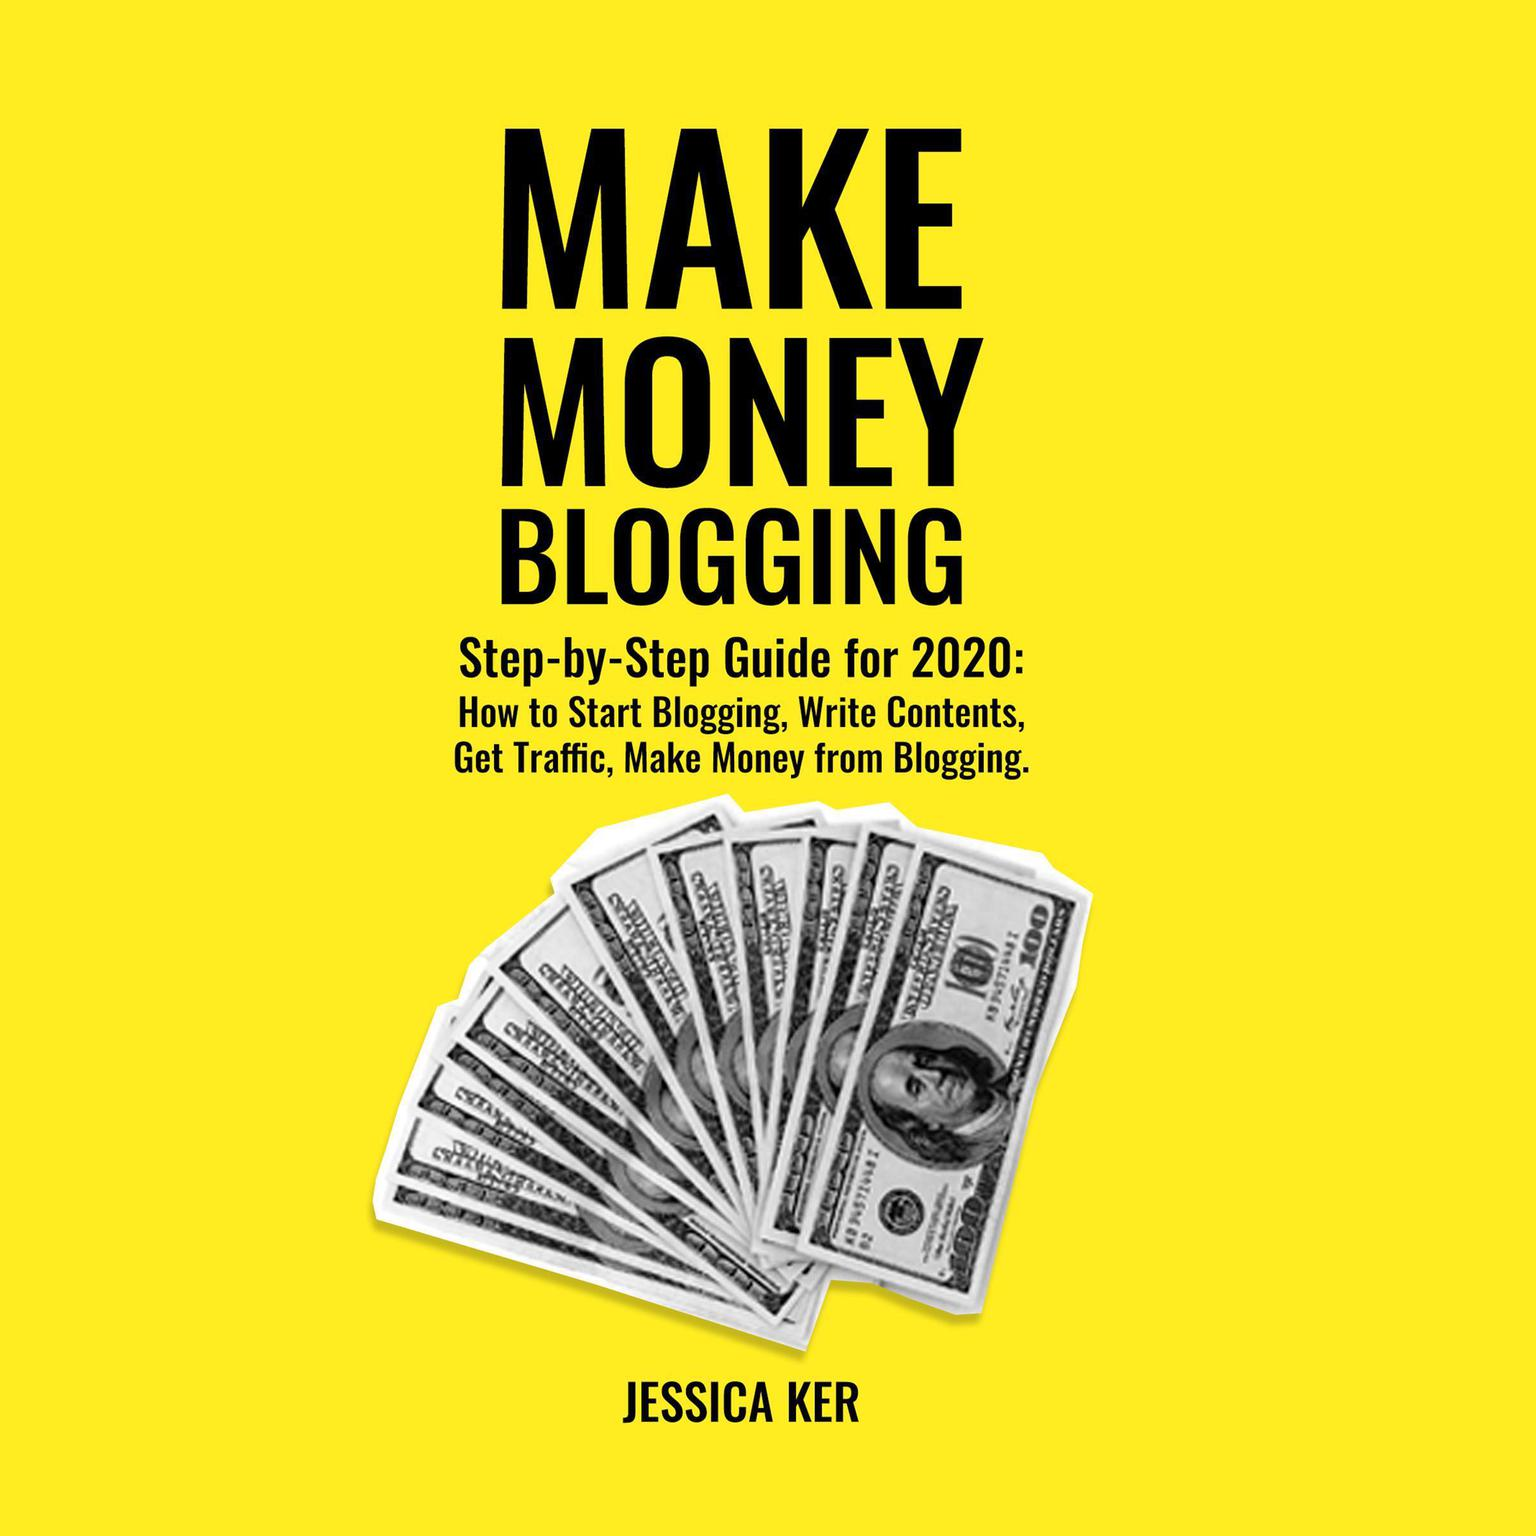 Make Money Blogging: Step-by-Step Guide for 2020: How to Start Blogging, Write Contents, Get Traffic, Make Money from Blogging Audiobook, by Jessica Ker